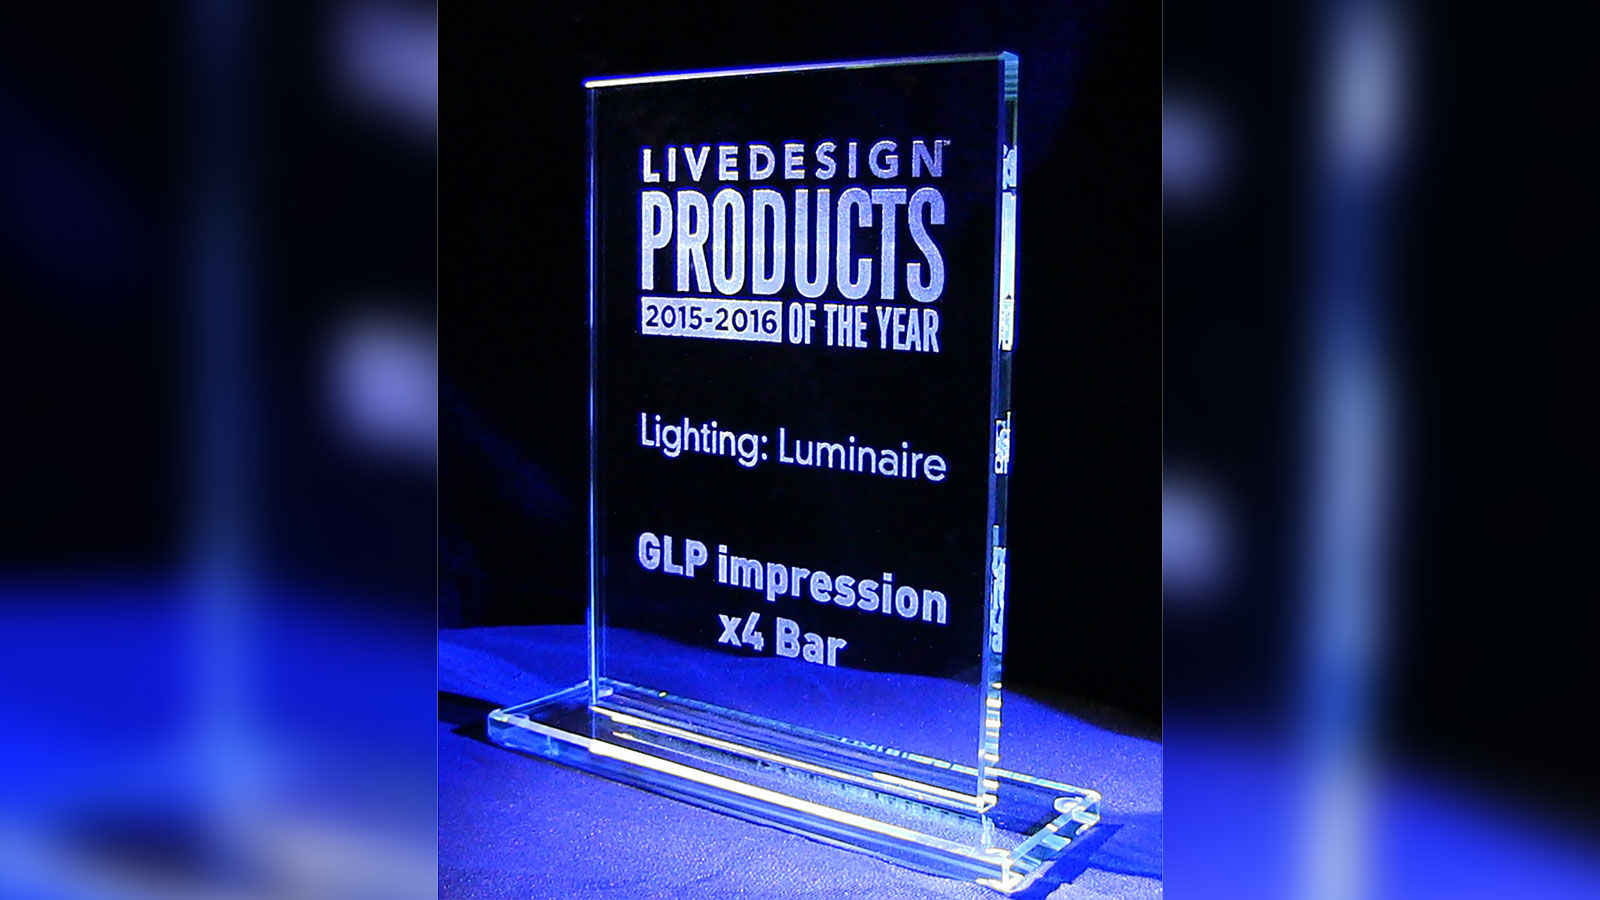 Live Design X4 Bar 20 Award